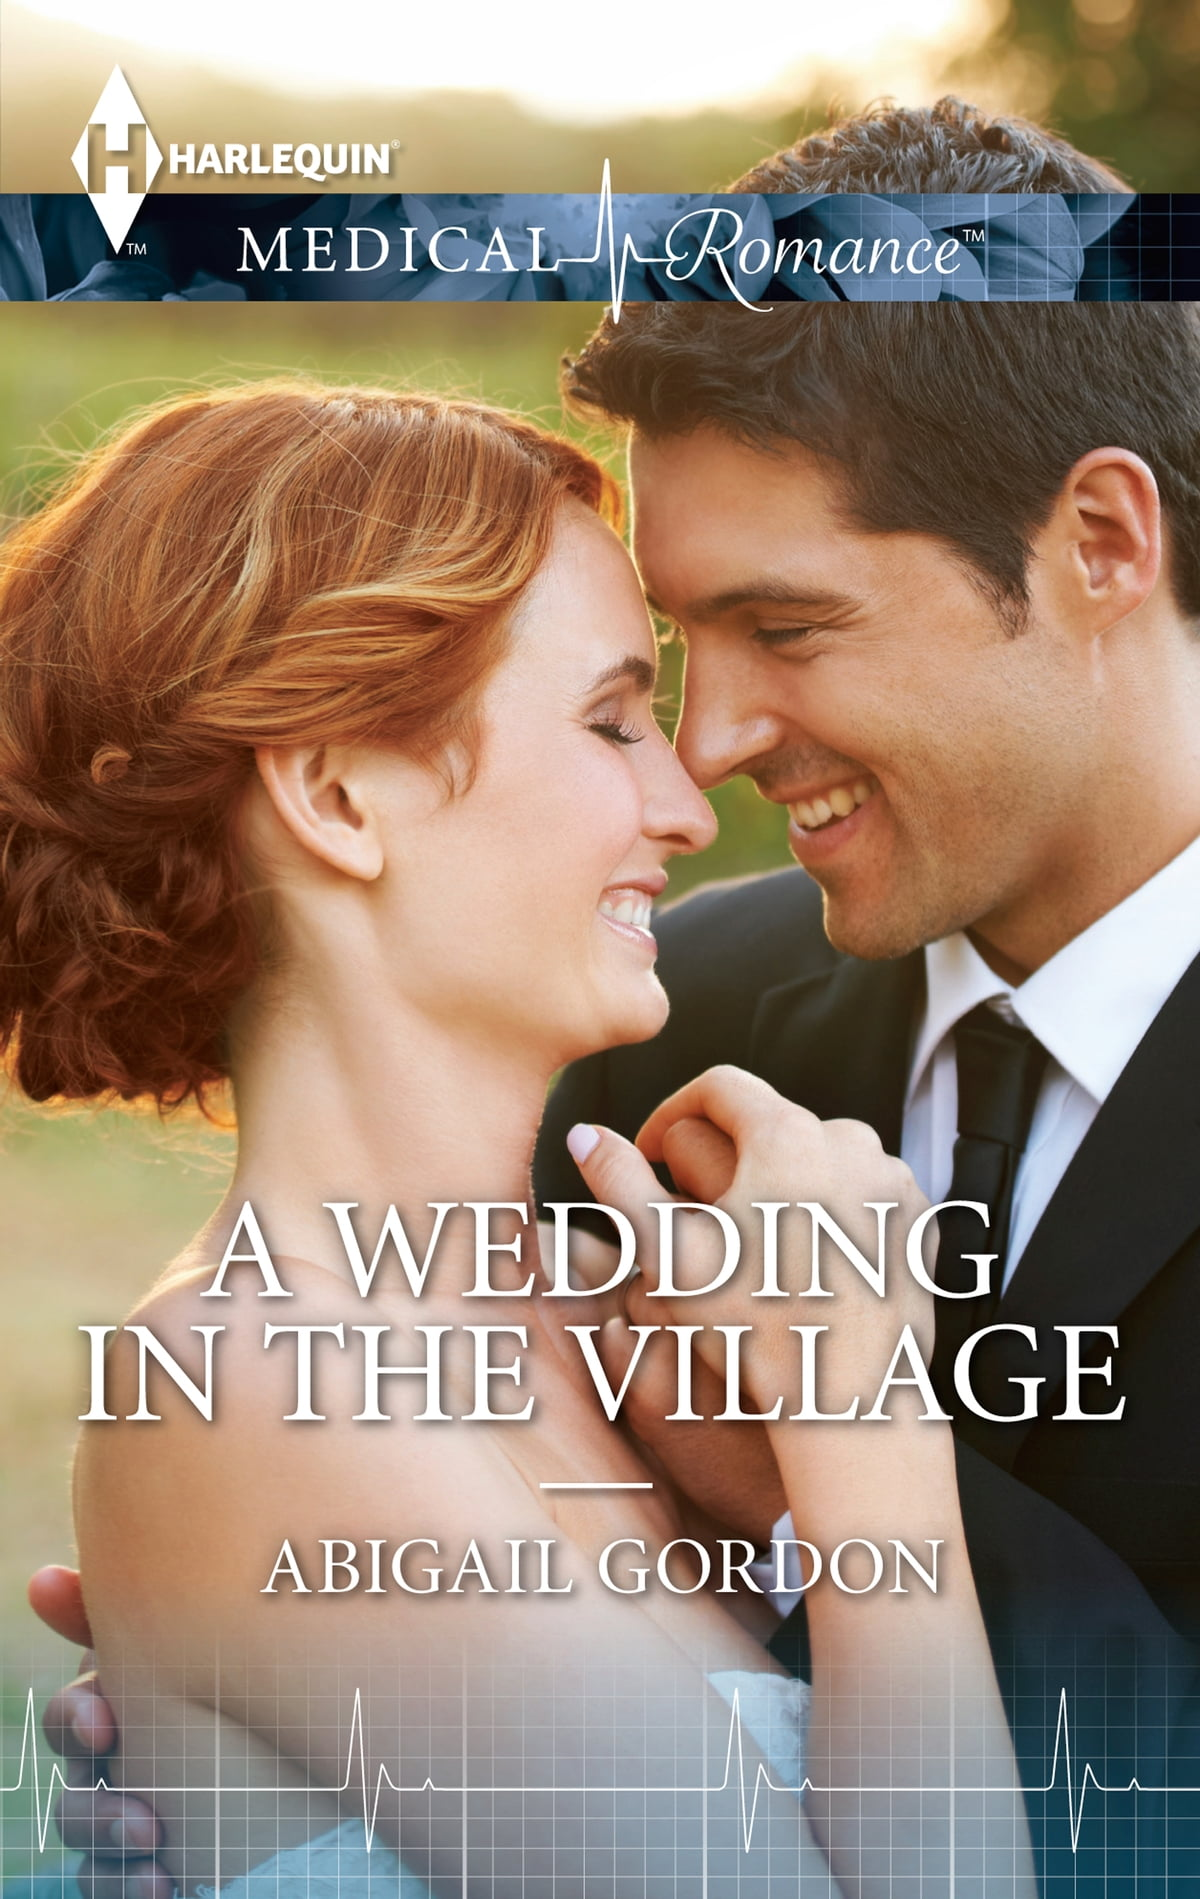 The villages dating ads